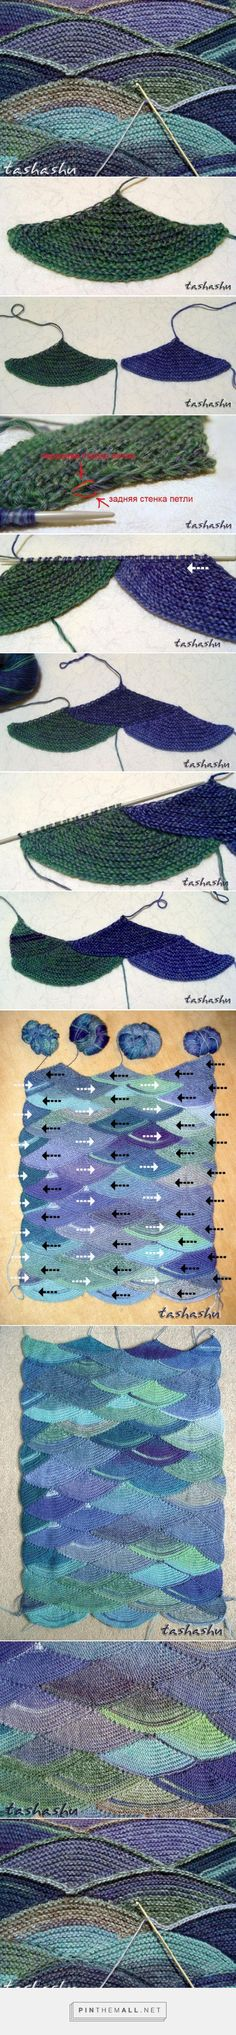 Knitted blanket: shell-shaped blocks. Lovely colour scheme ~~ http://www.liveinternet.ru/users/dakka_-_l/rubric/1677886/ ~~ LiveInternet.